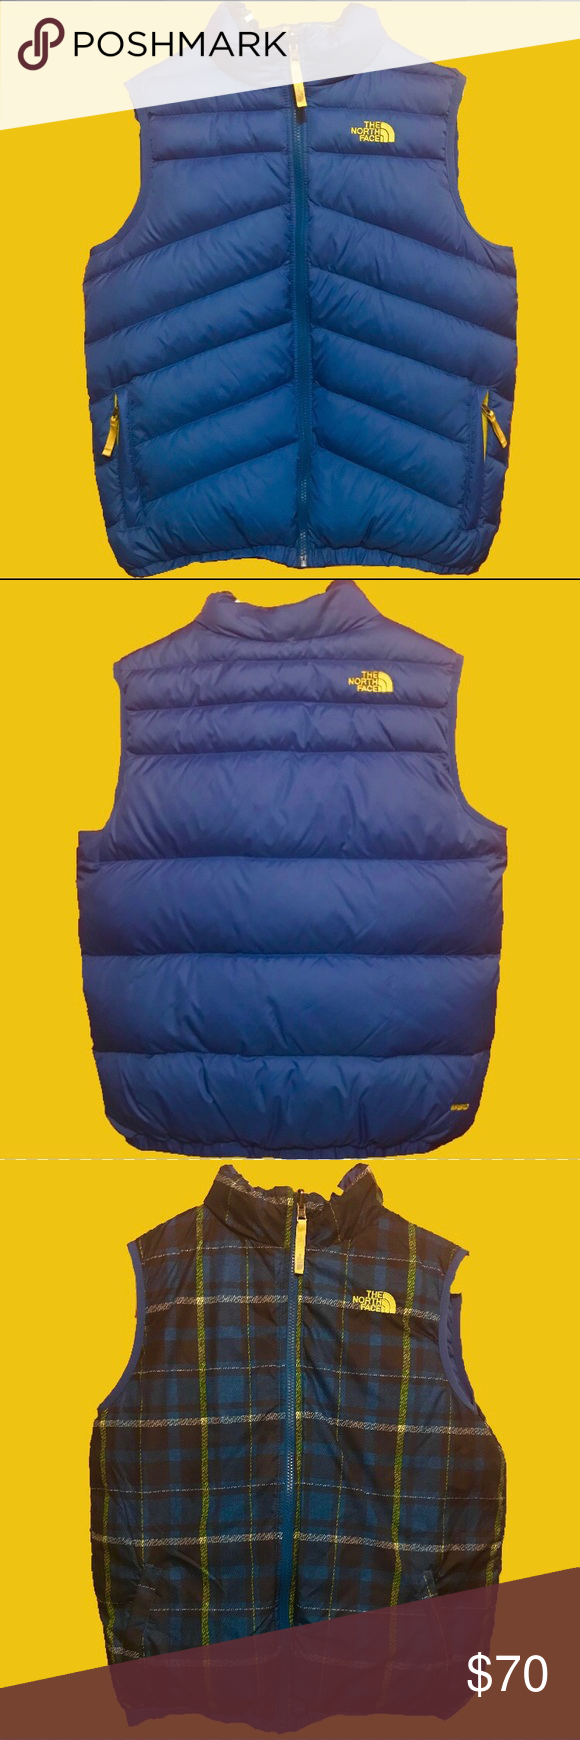 0cad7423bac8 The North Face 550 Reversible Perrito Vest Boy s The North Face Reversible  Perrito Vest Boy s Style - Reverses to print body - Zip-in compatible -  Welted ...